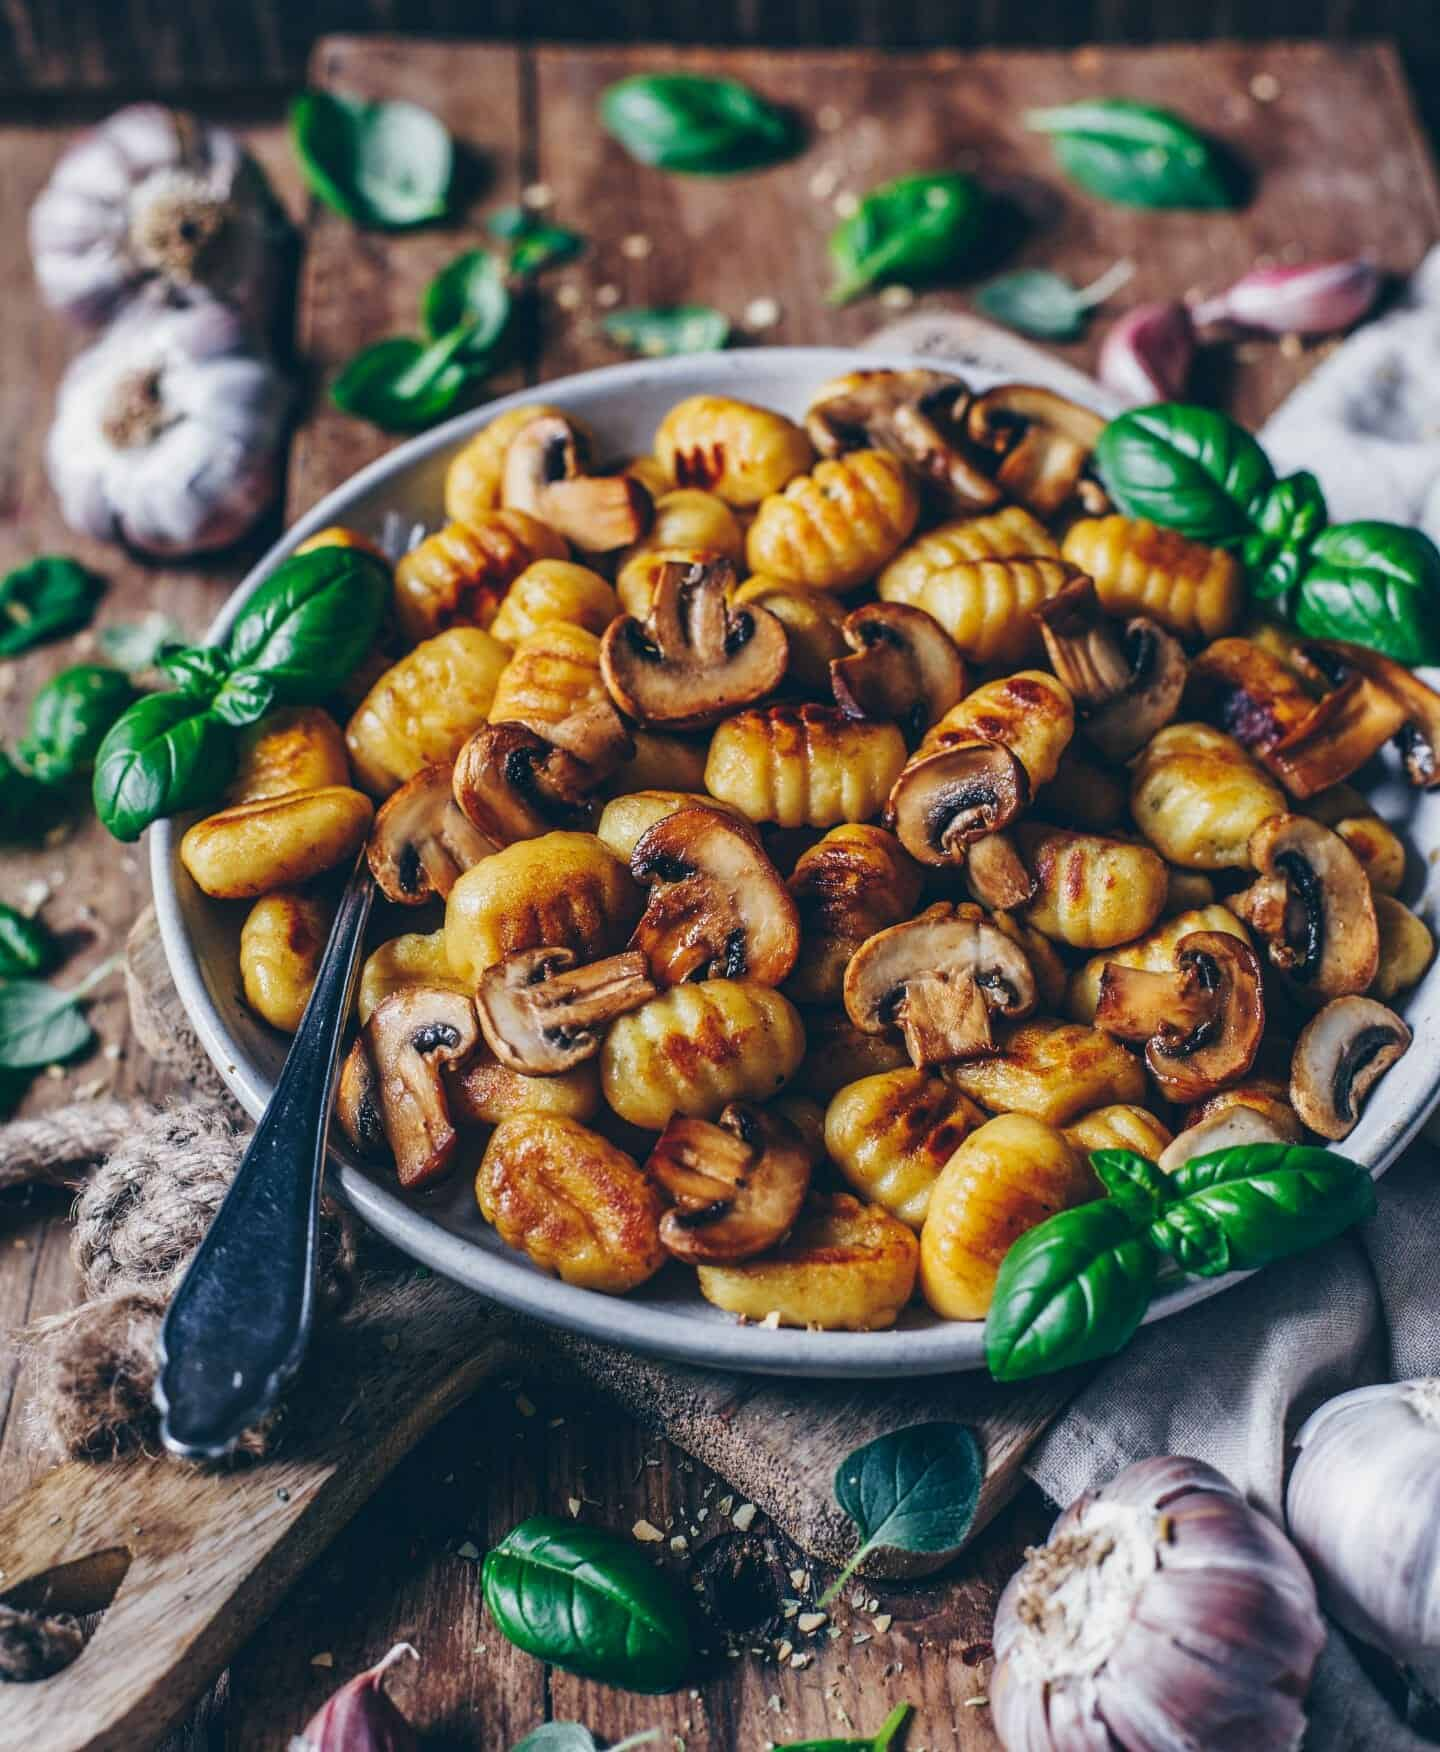 Crispy roasted Gnocchi with Garlic Mushrooms (vegan)